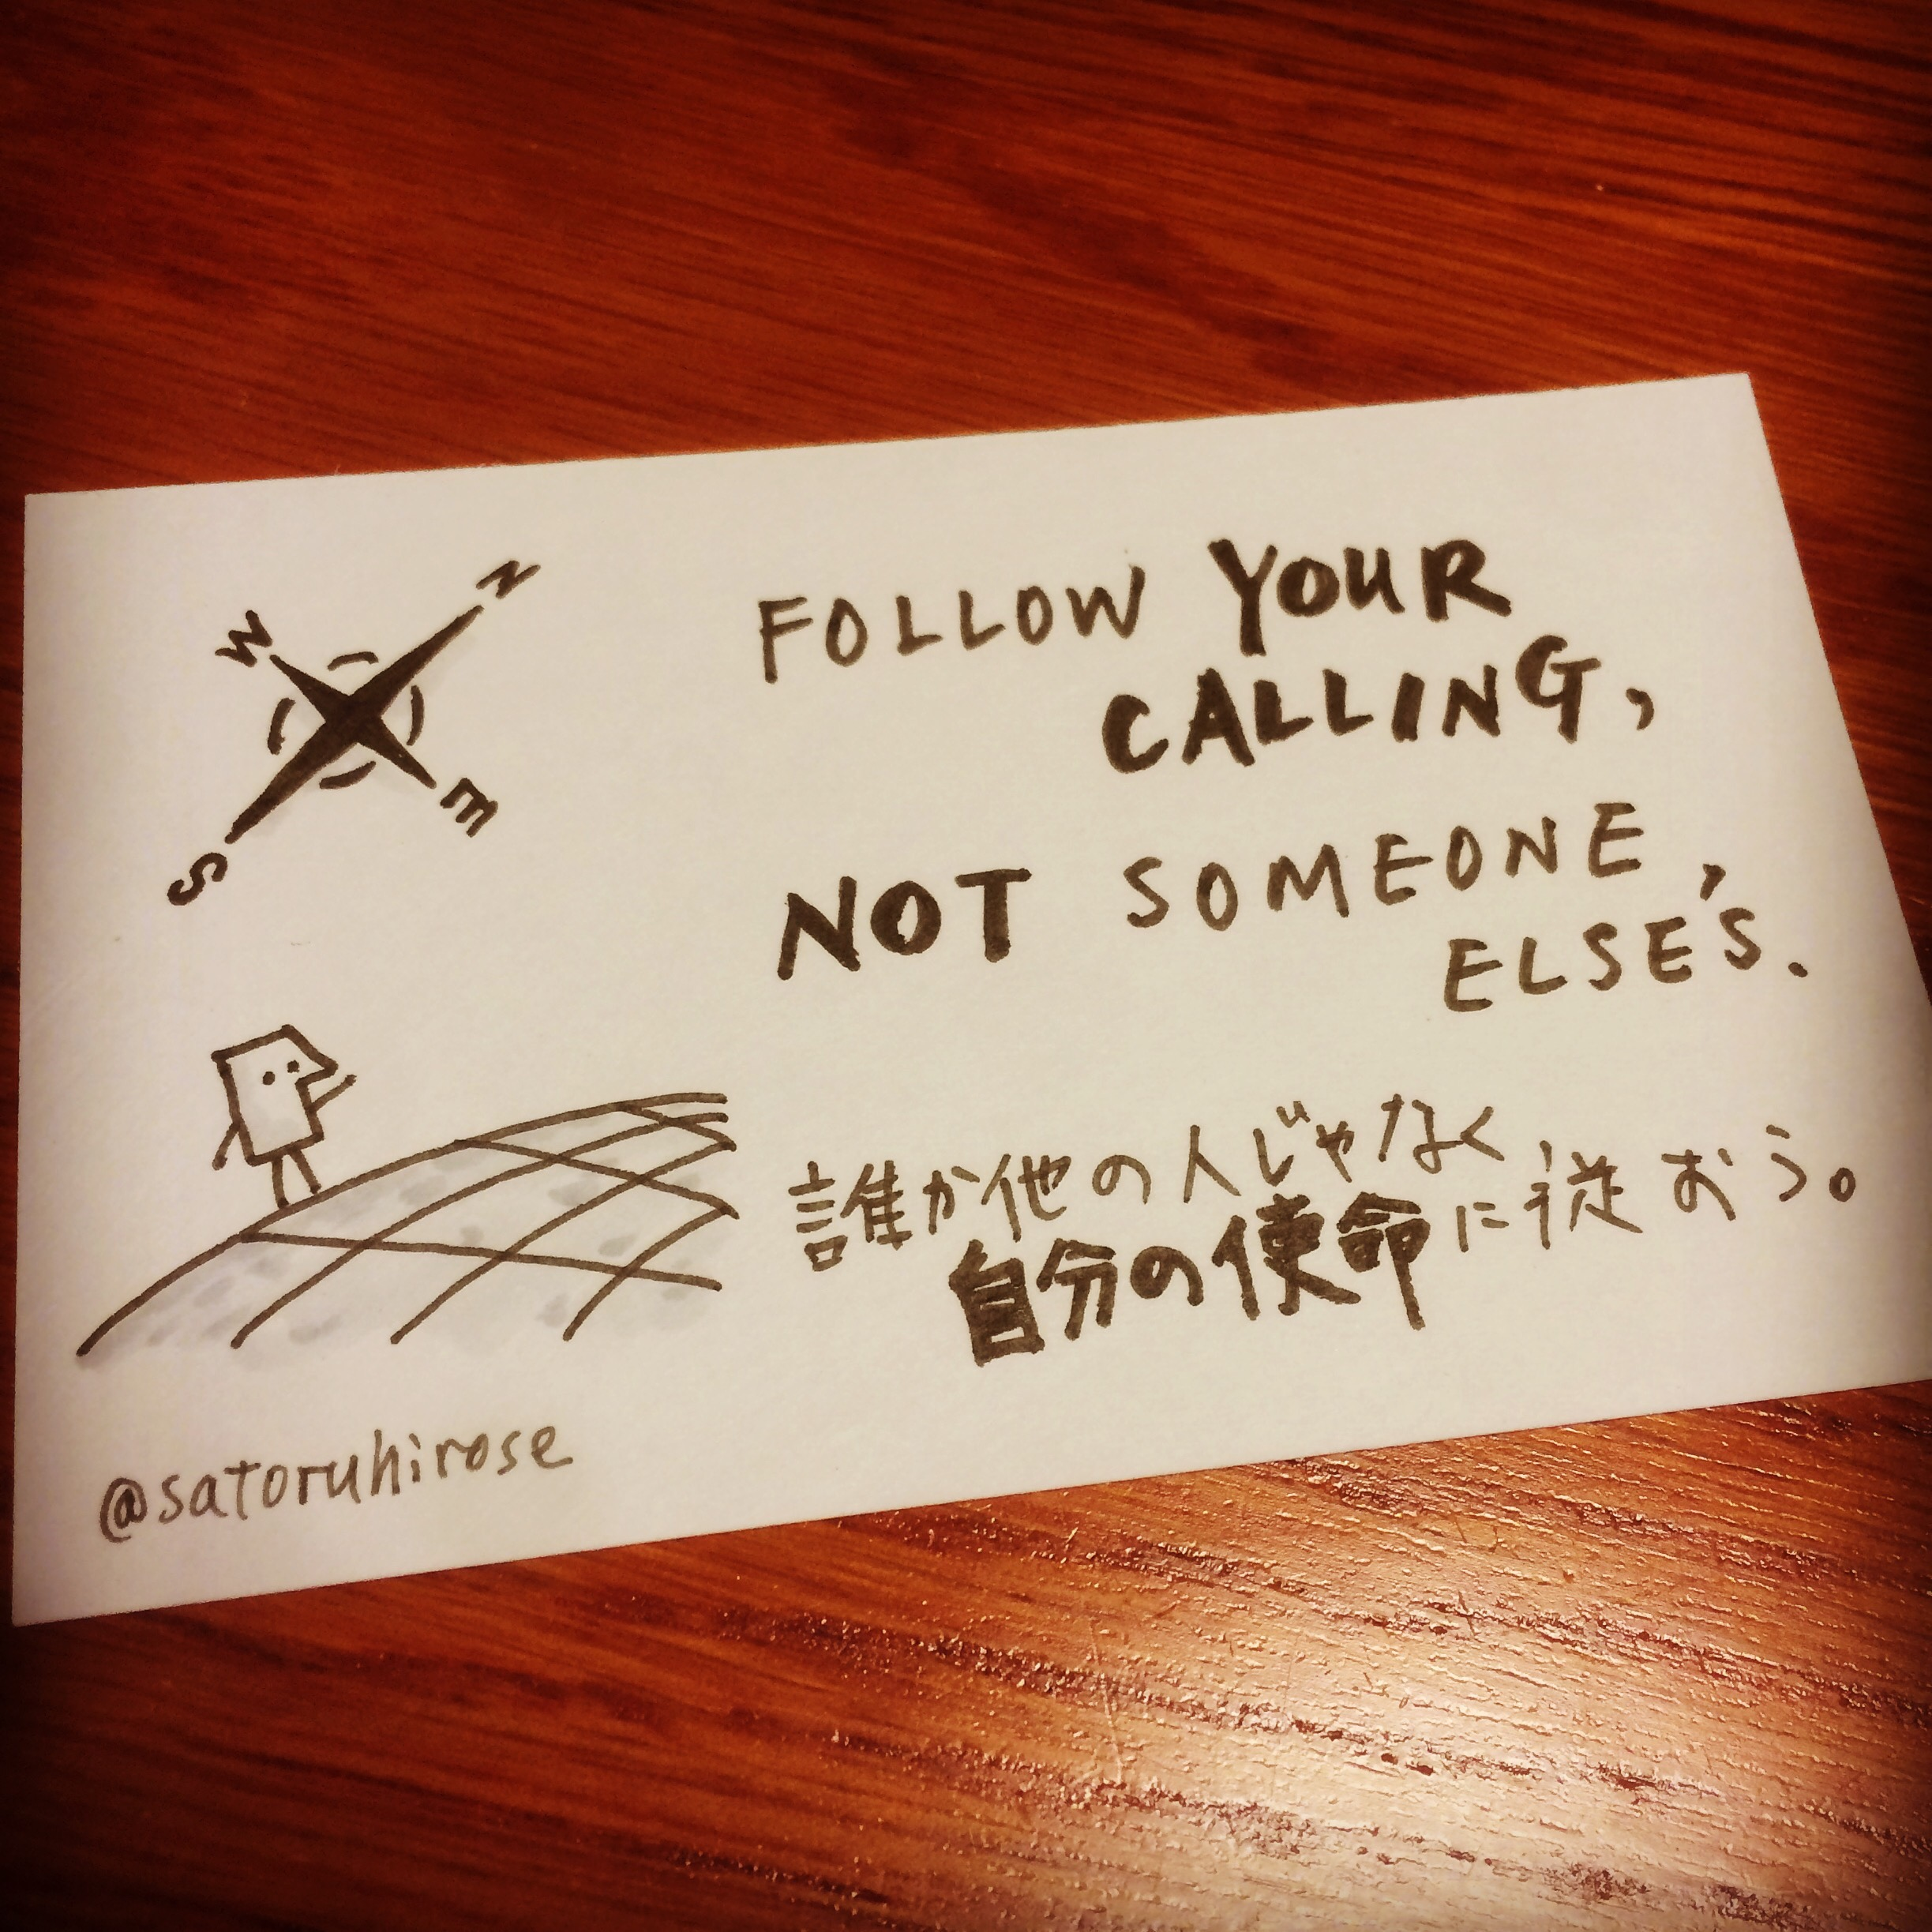 Follow your calling, not someone else's.